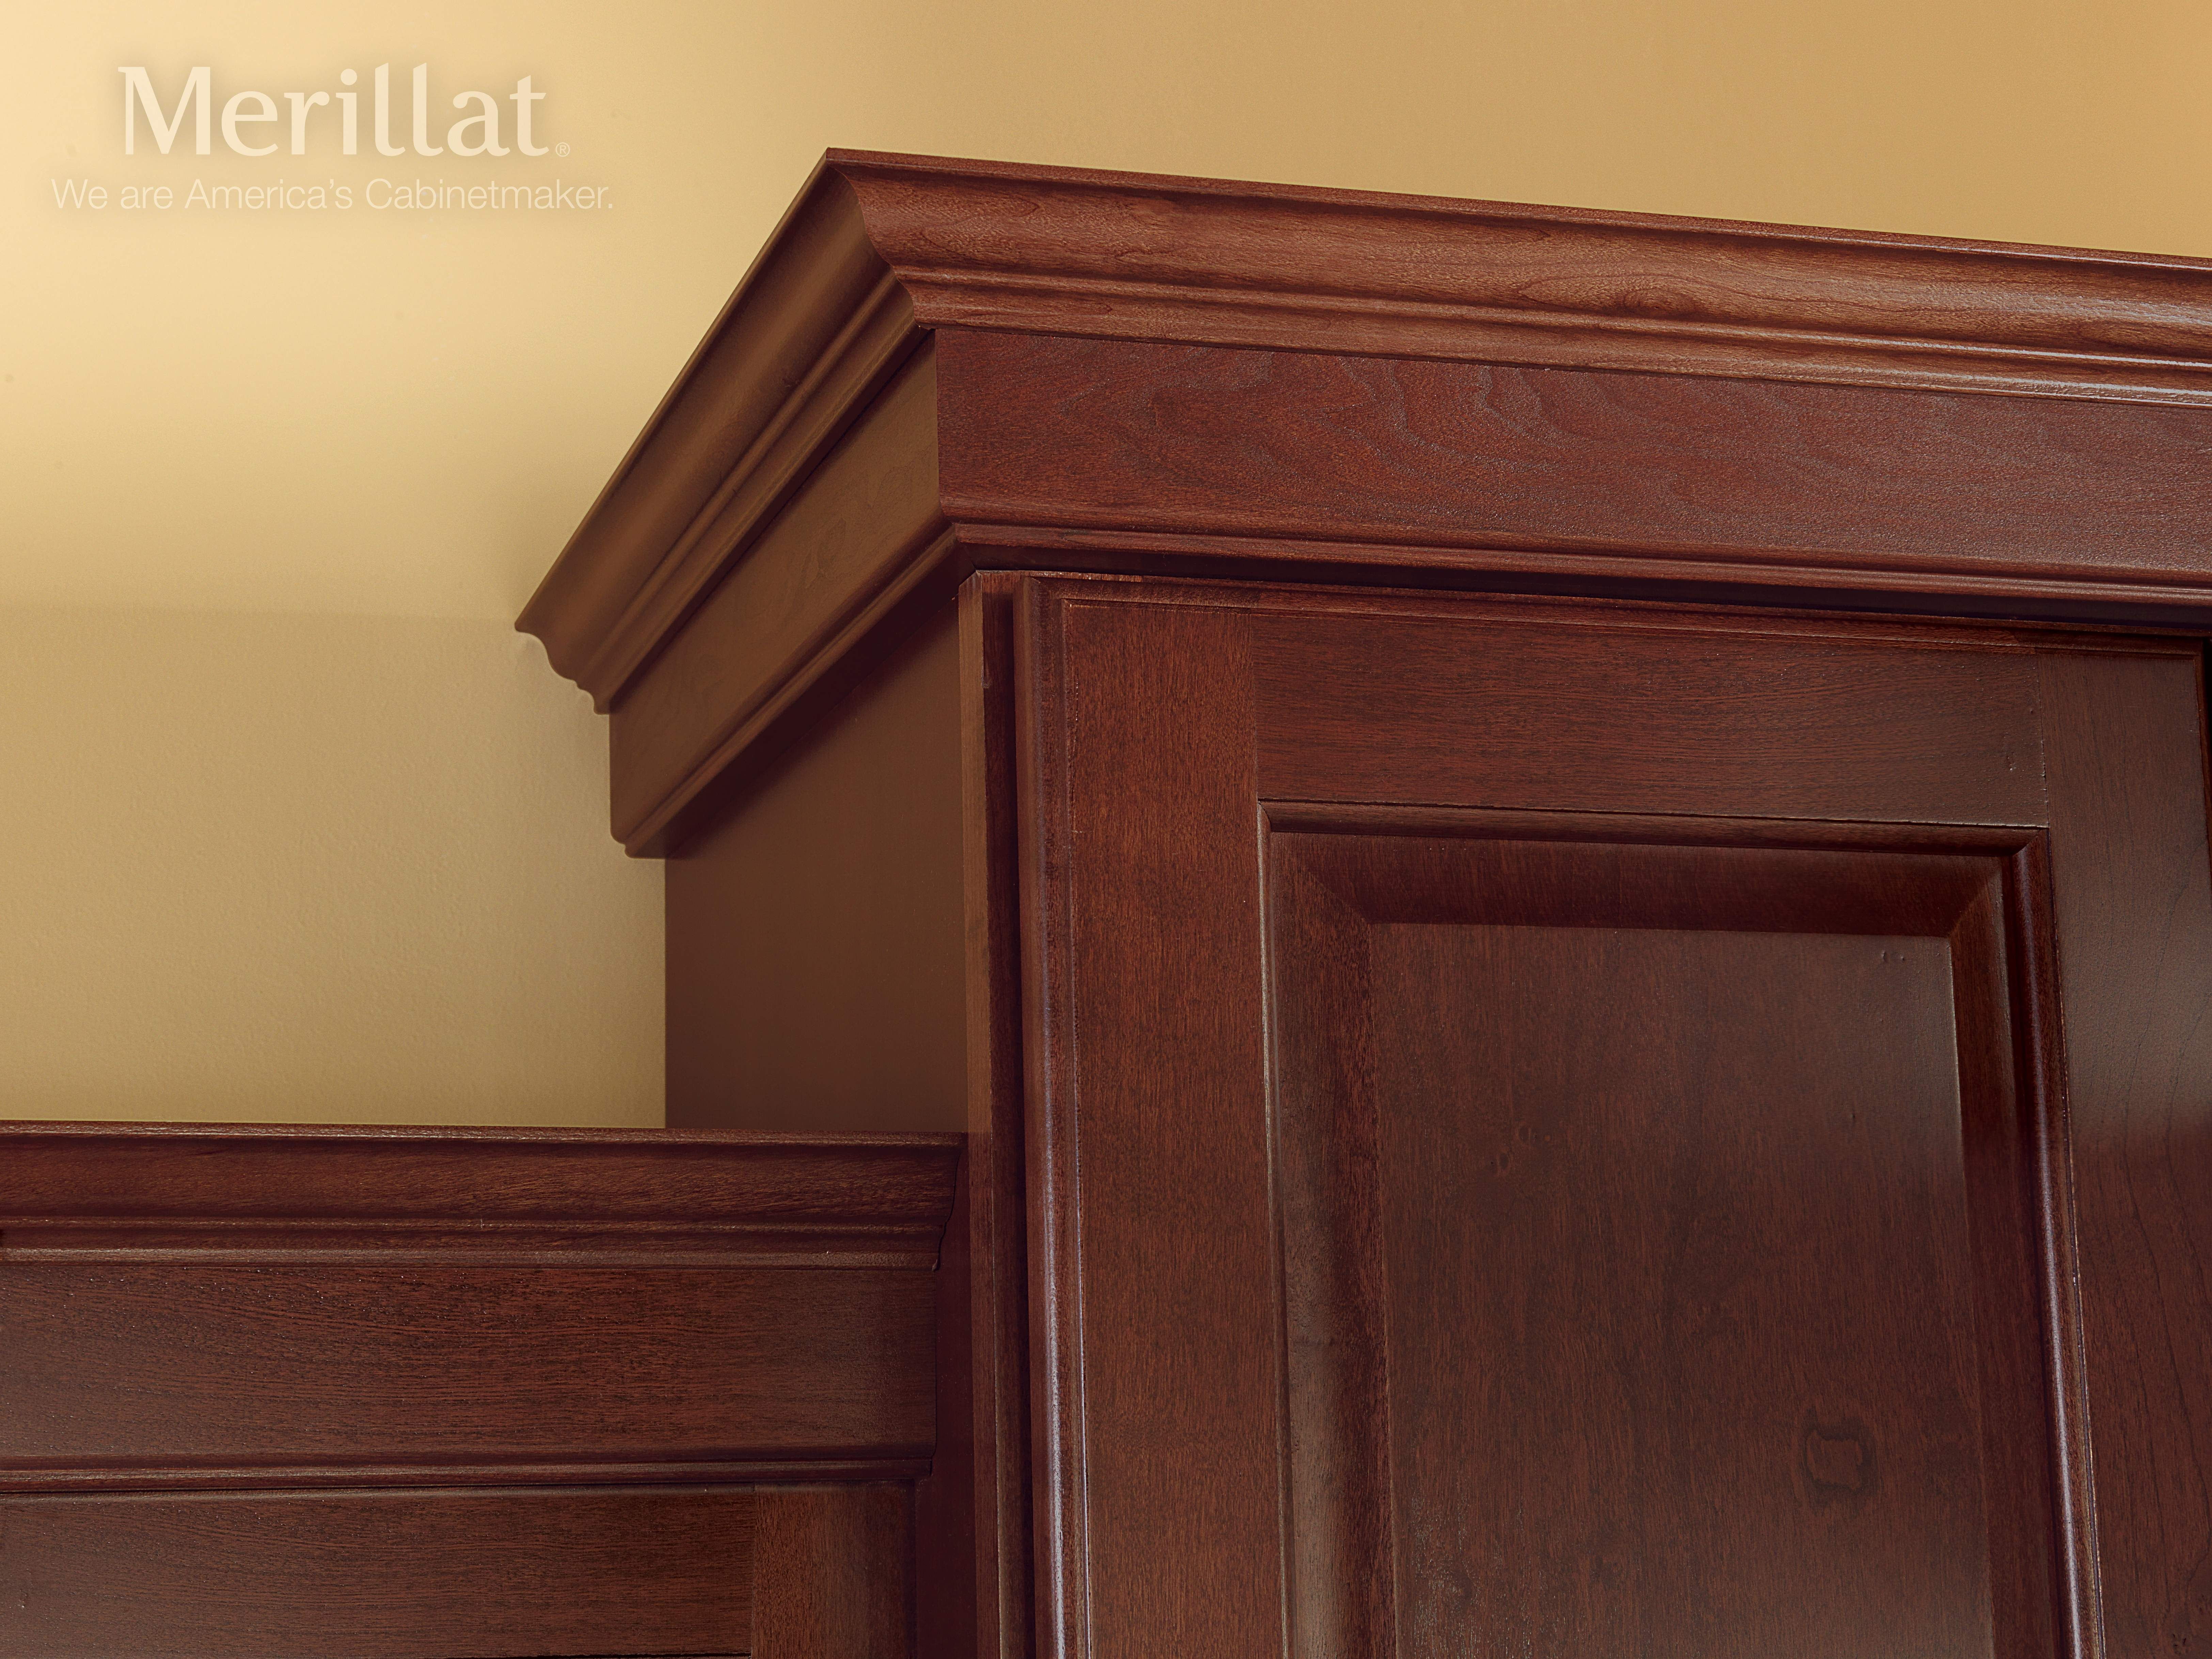 Merillat Classic Fox Harbor Cherry Pecan Merillat cabinetry